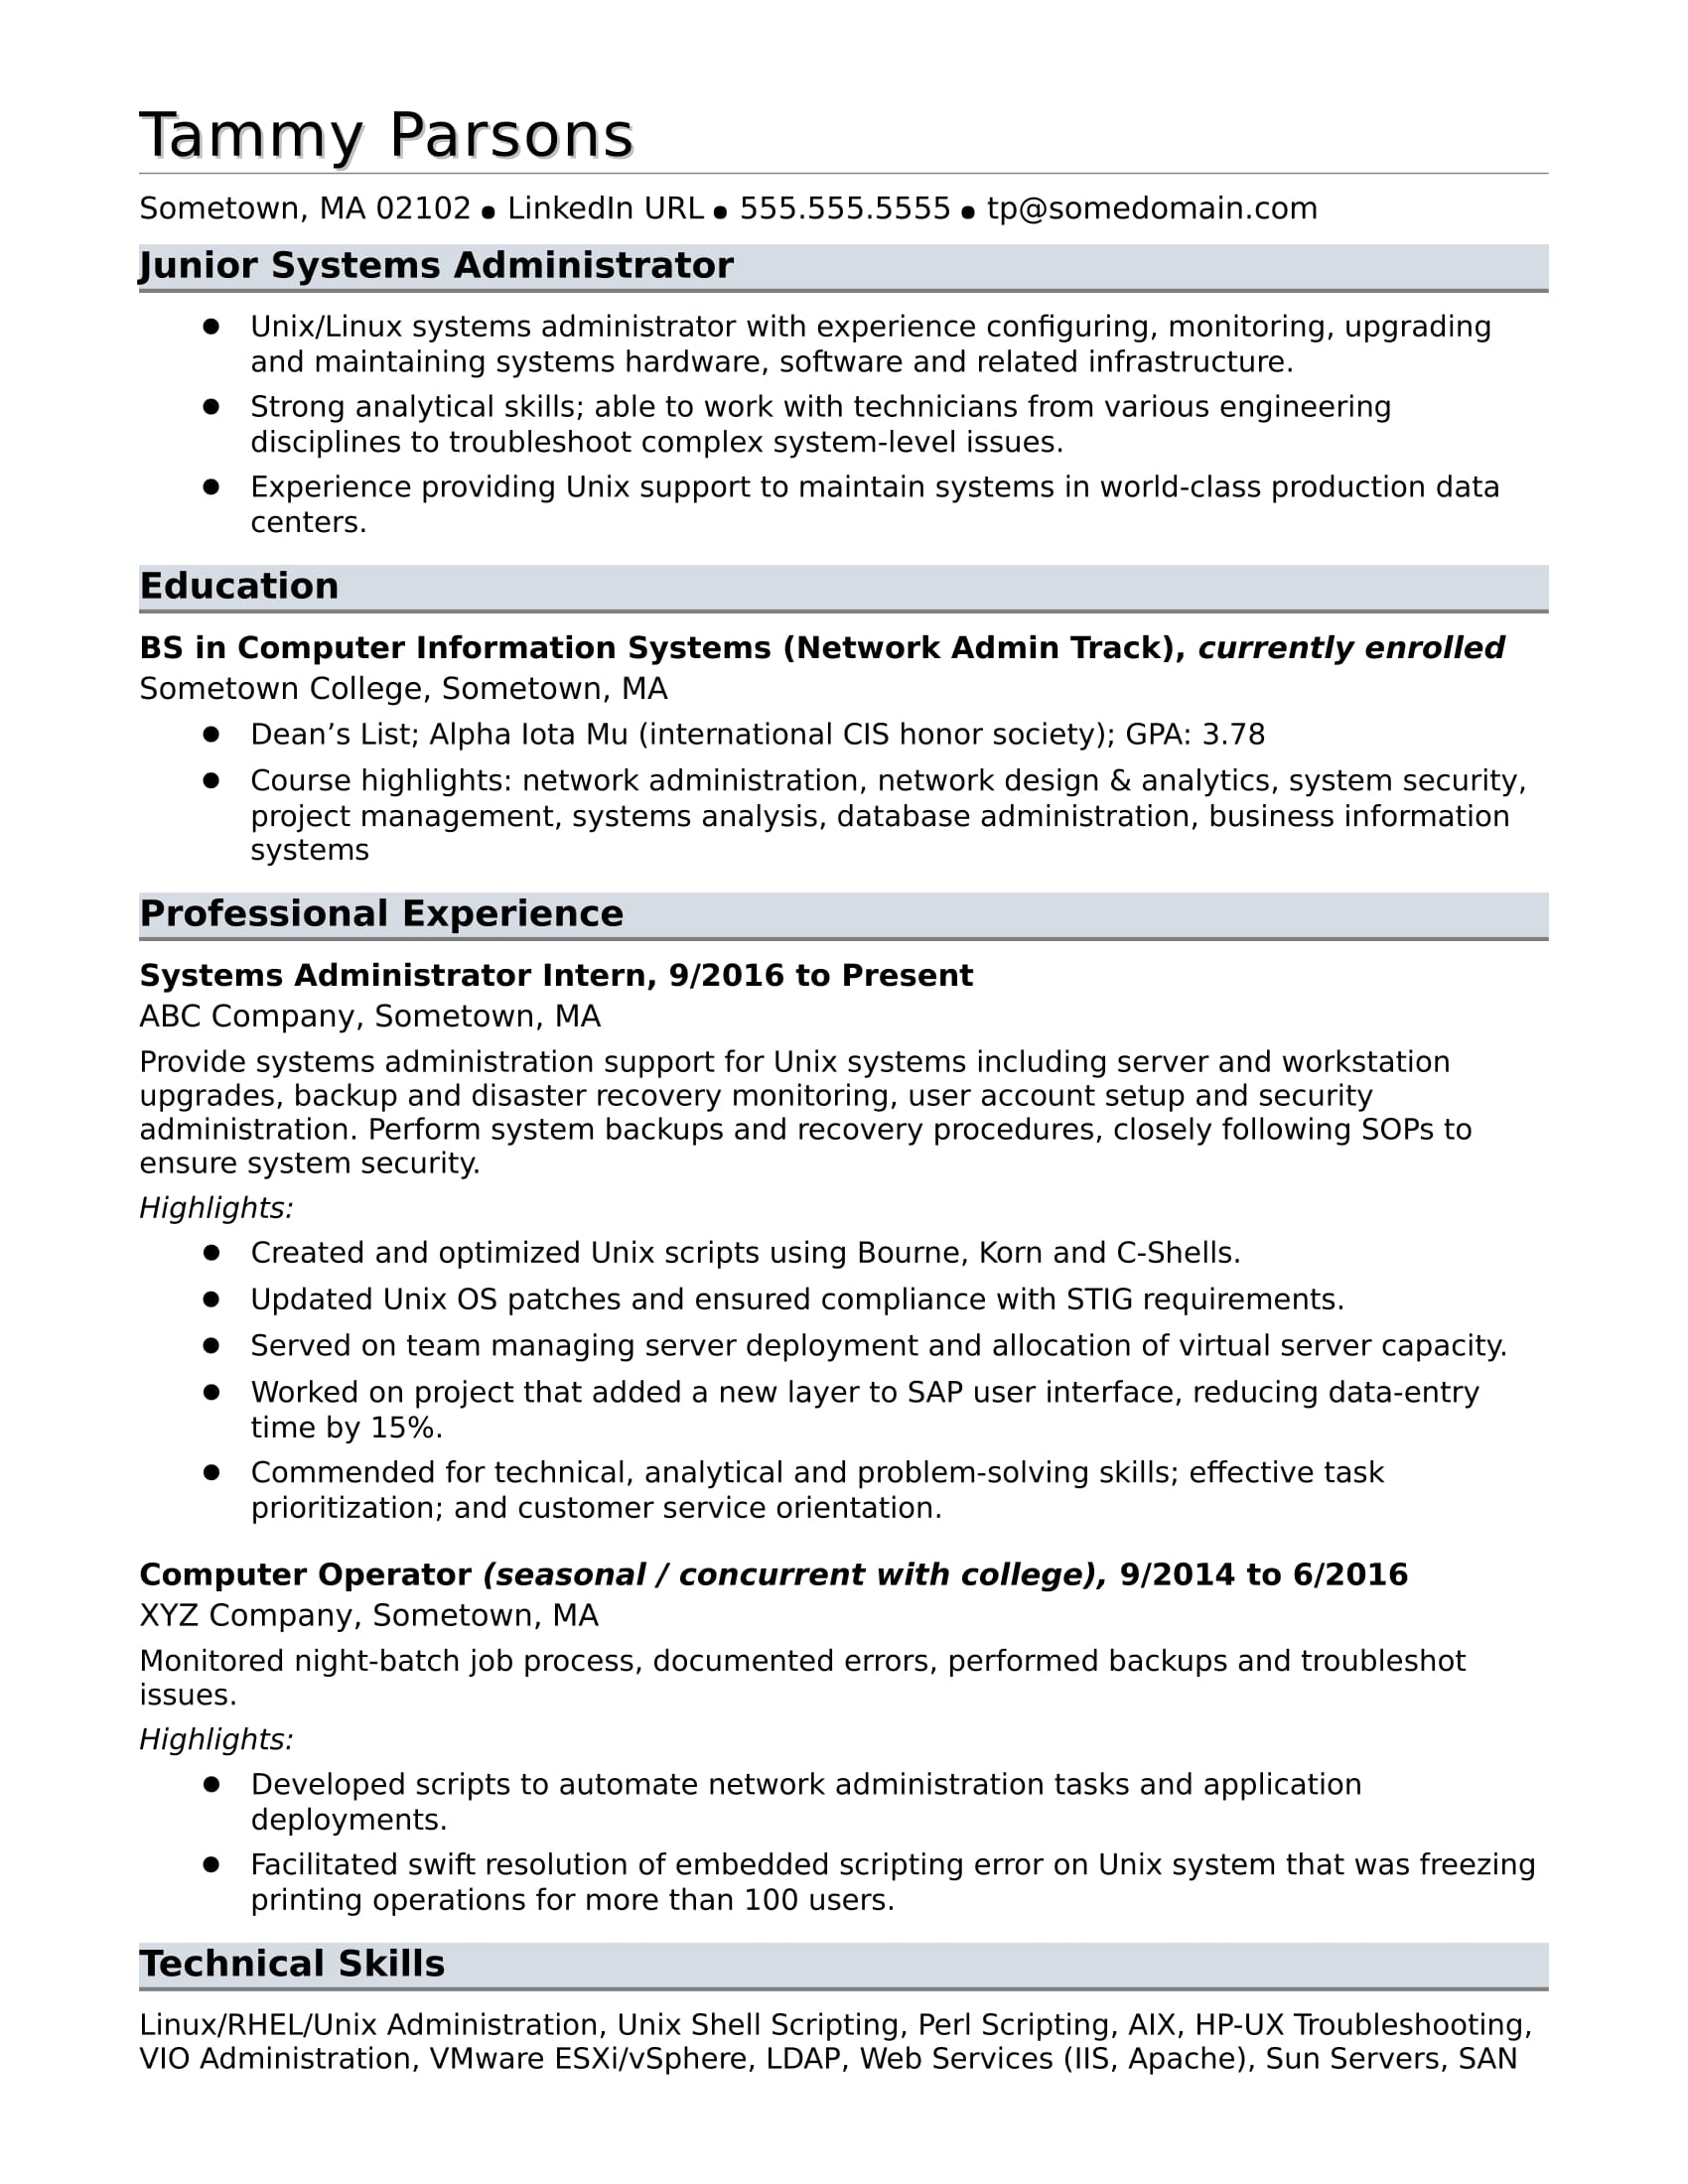 sample resume for an entry level systems administrator - Salesforce Admin Resume